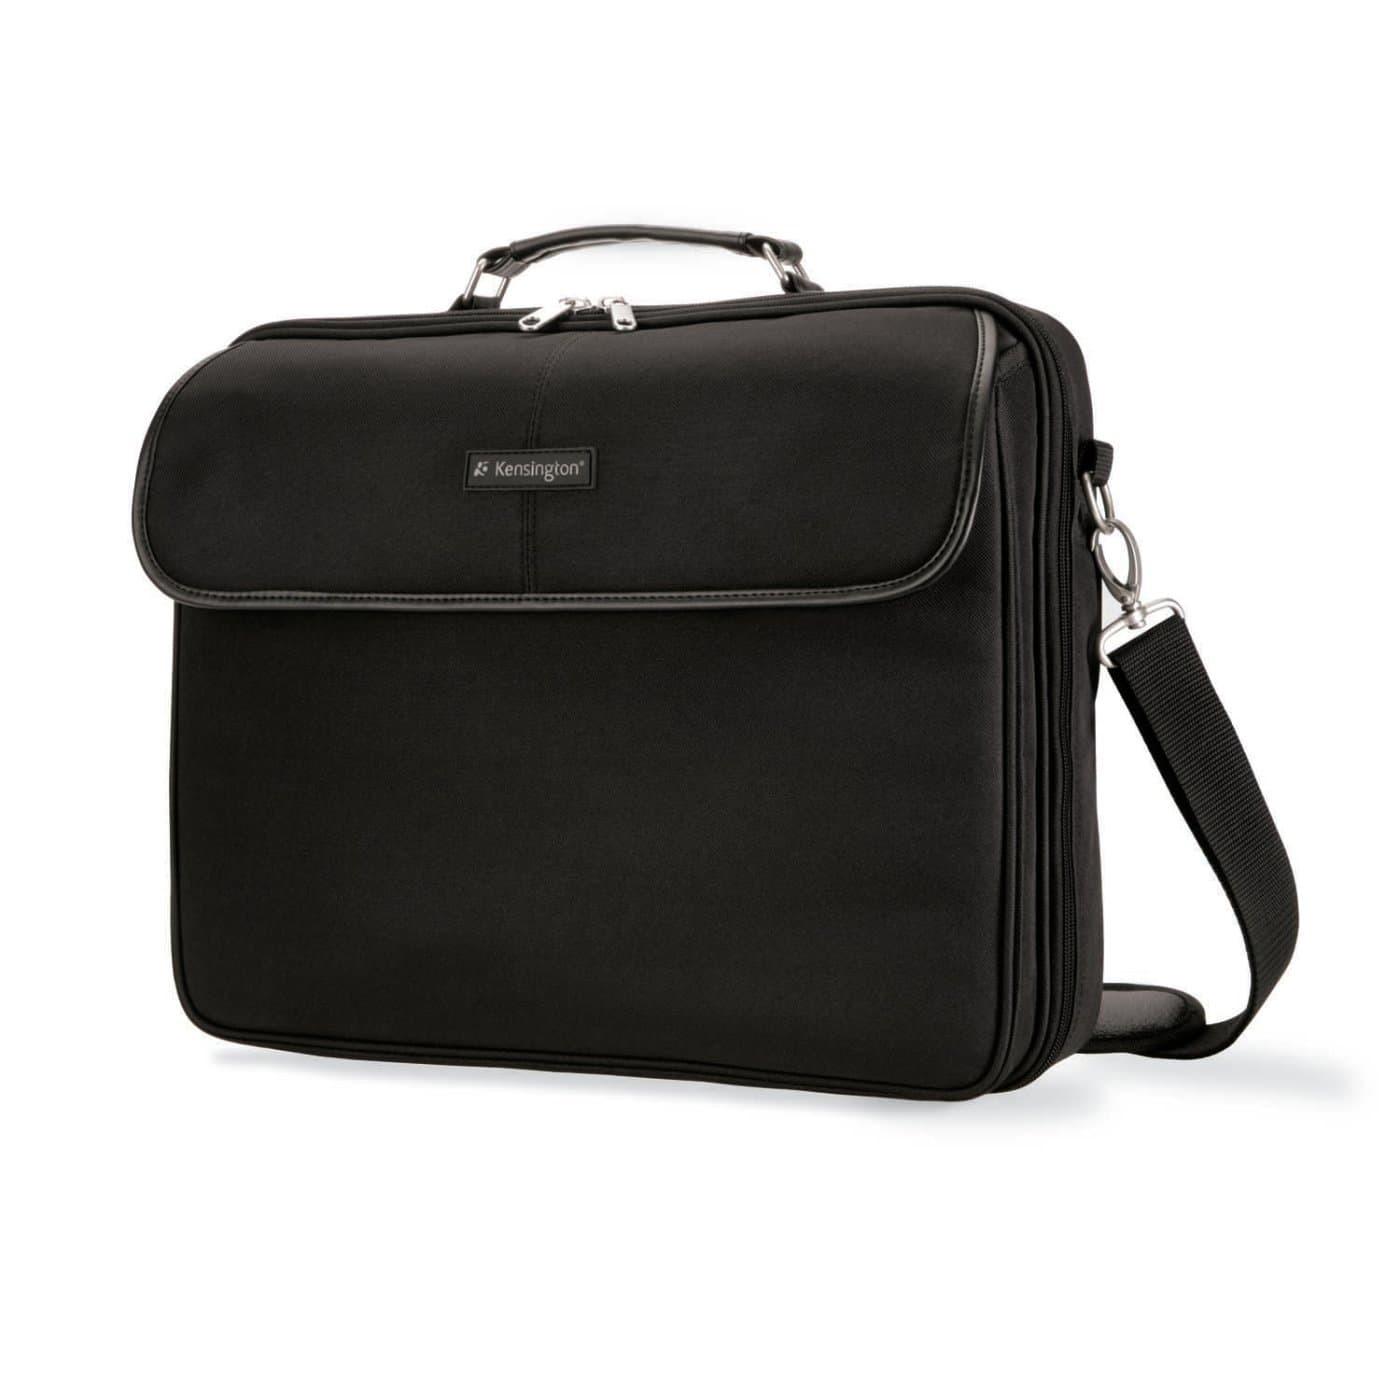 Simply Portable Clamshell Case Sp30 15.6in